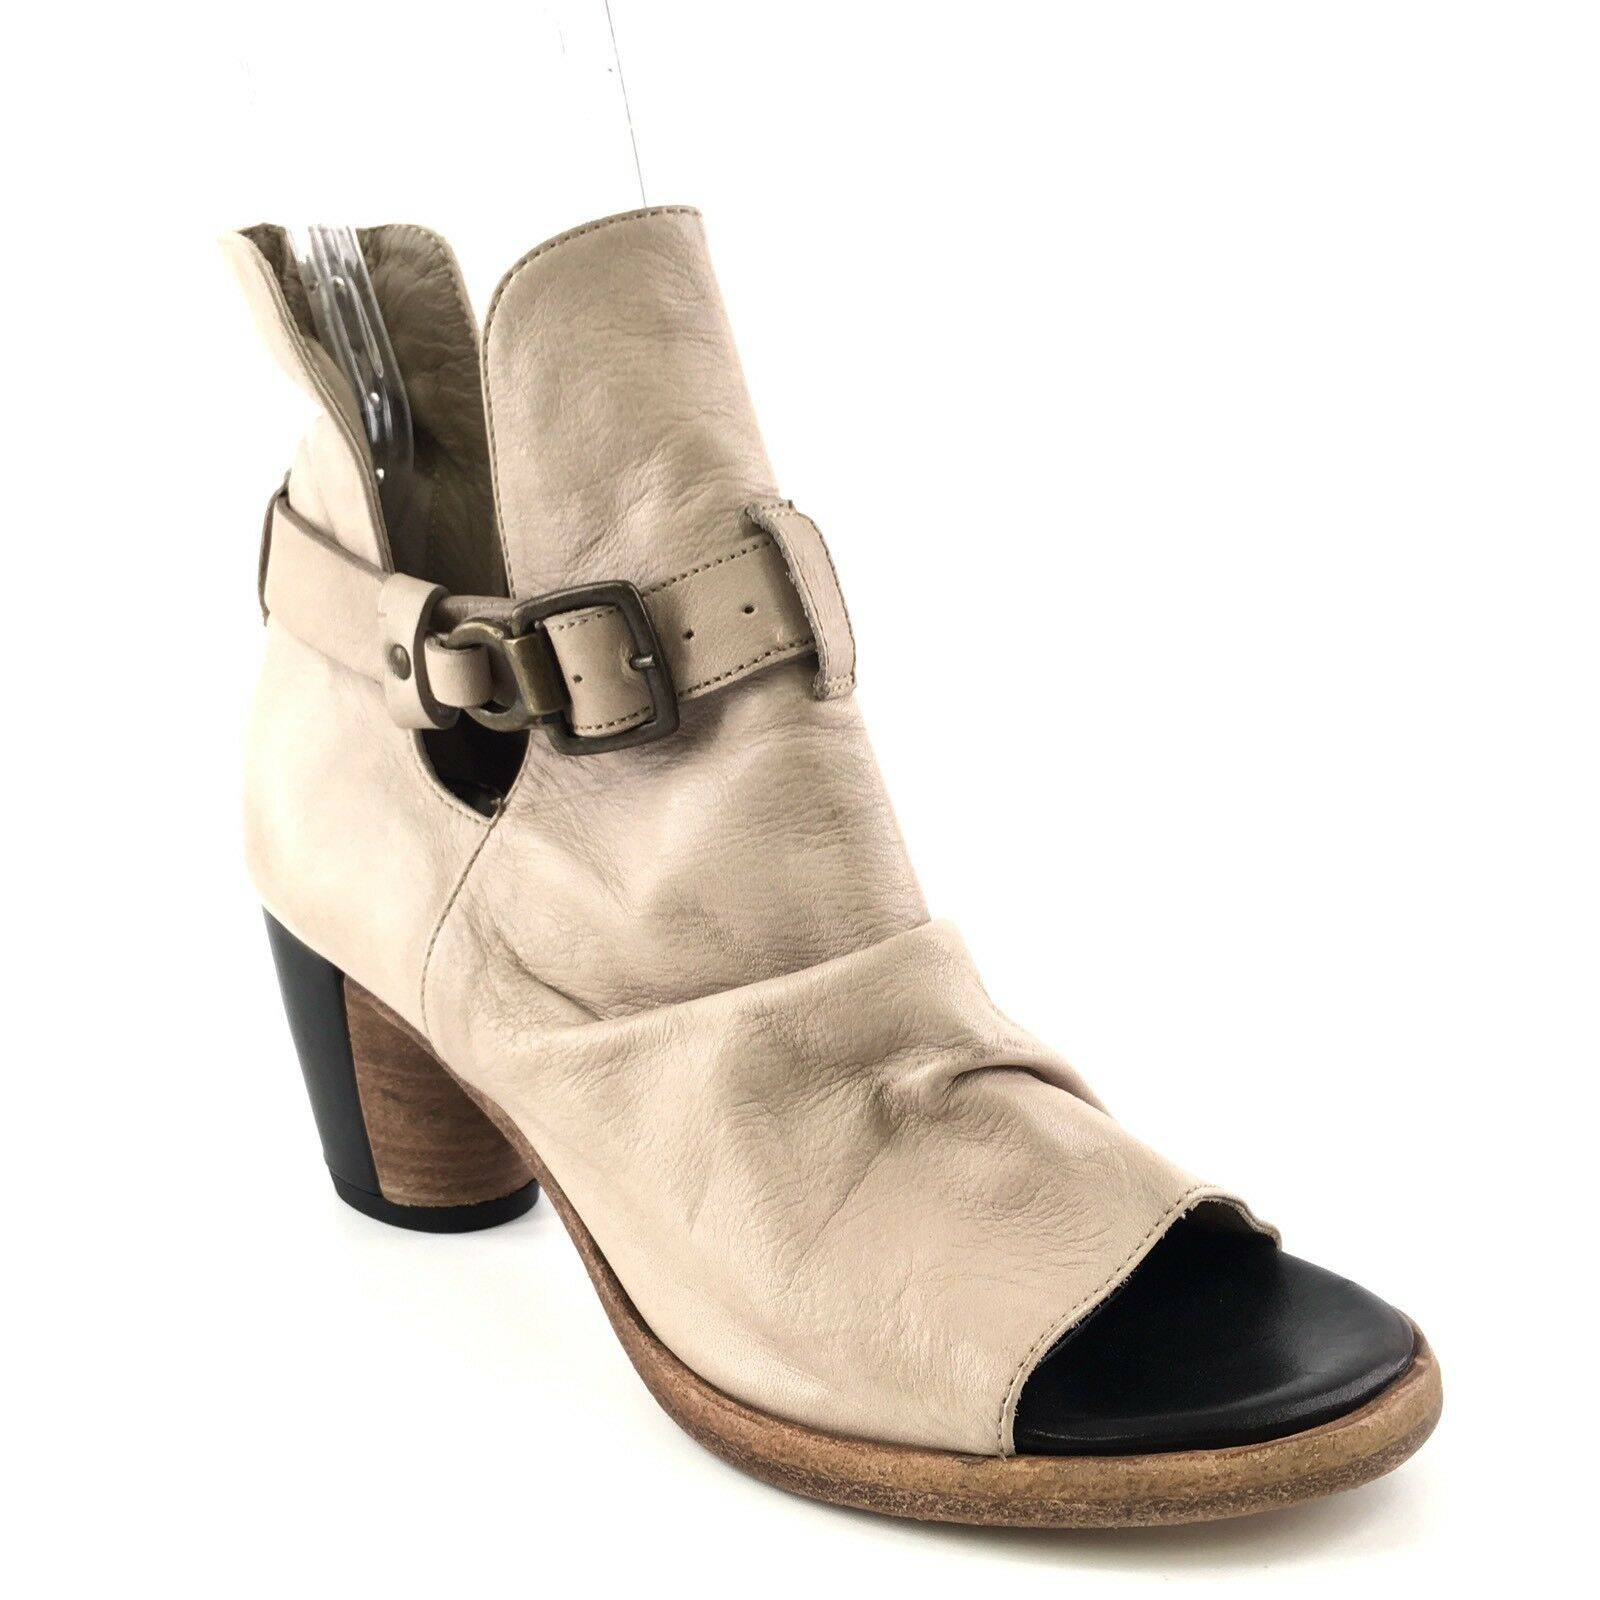 New Alberto Fermani Taupe Leather Open Toe Ankle Boots Women's Size 6 M*